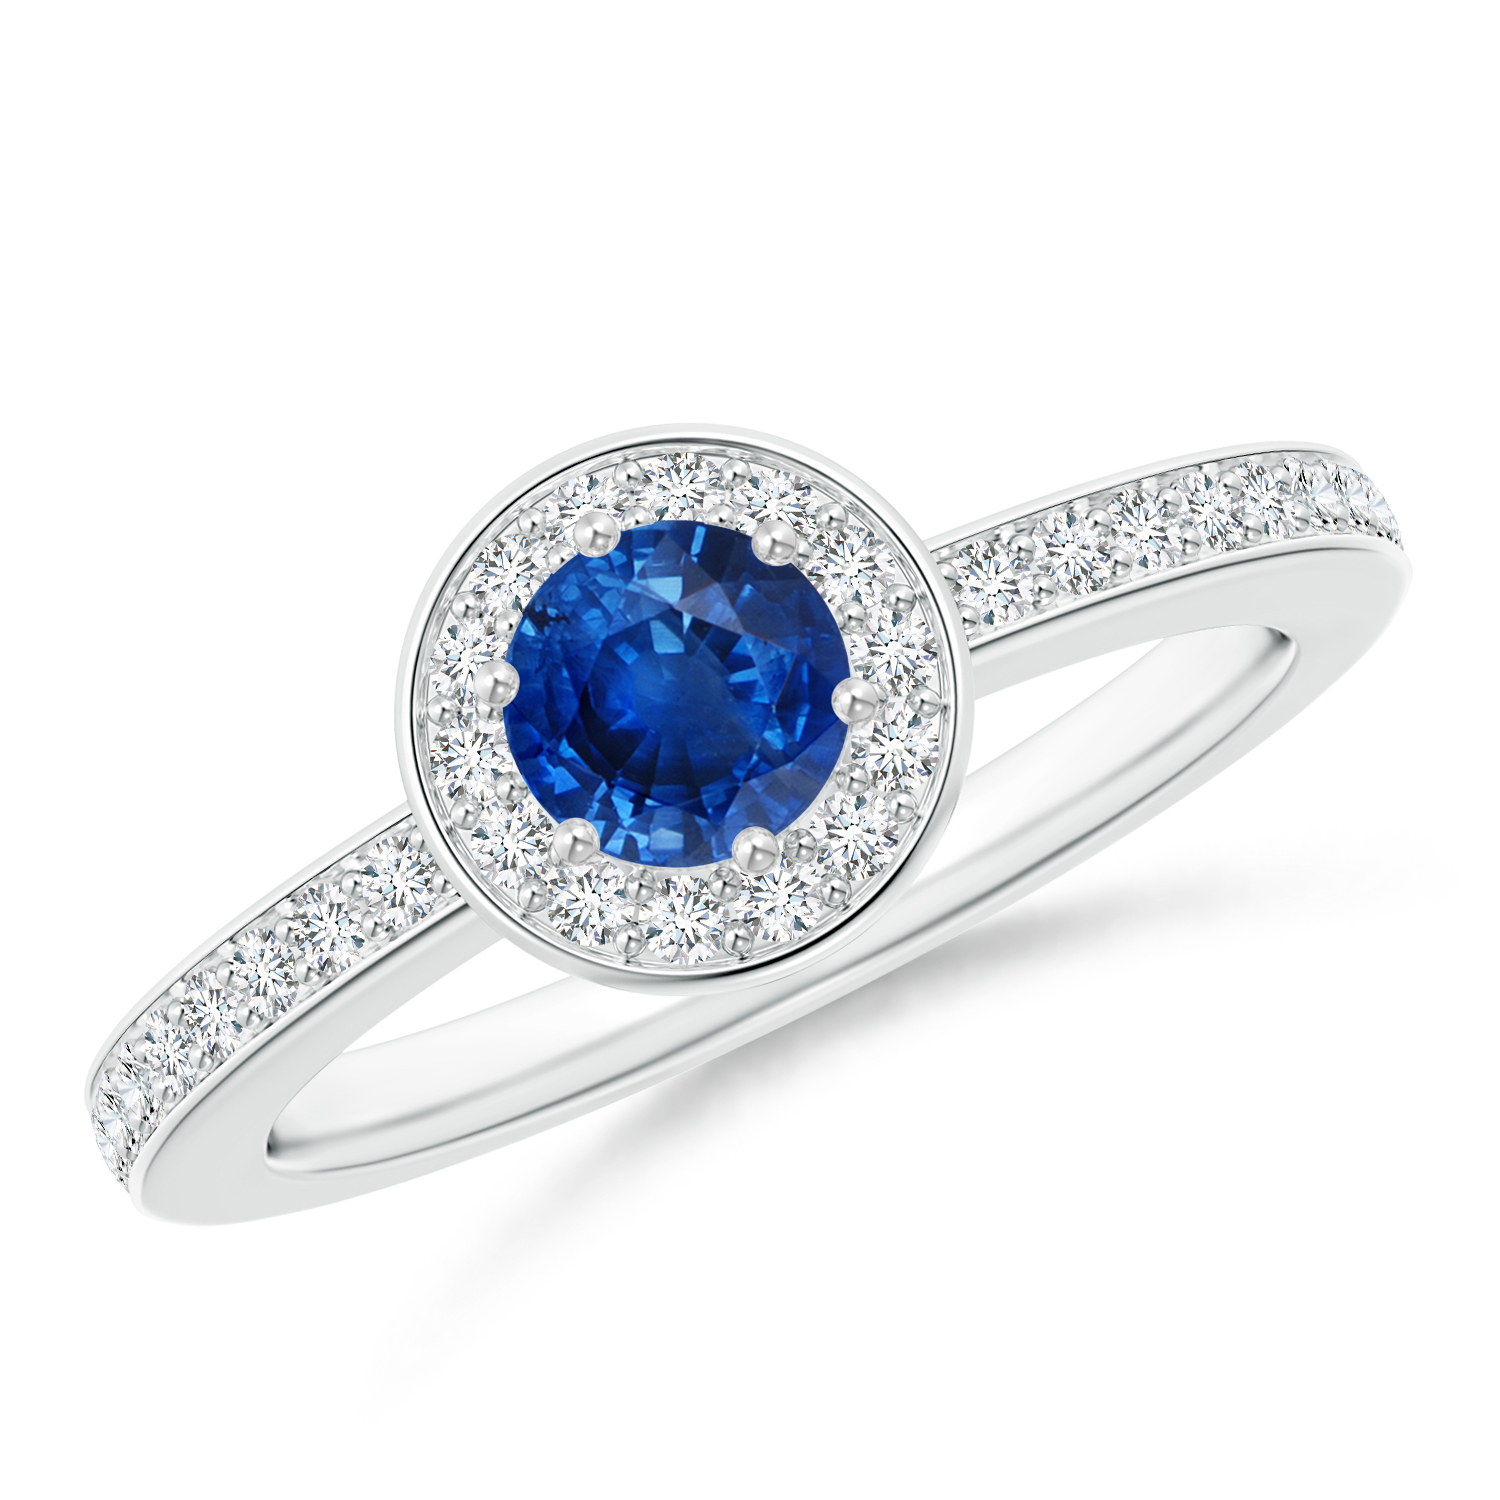 Round Blue Sapphire Halo Ring with Diamond Accent - Angara.com